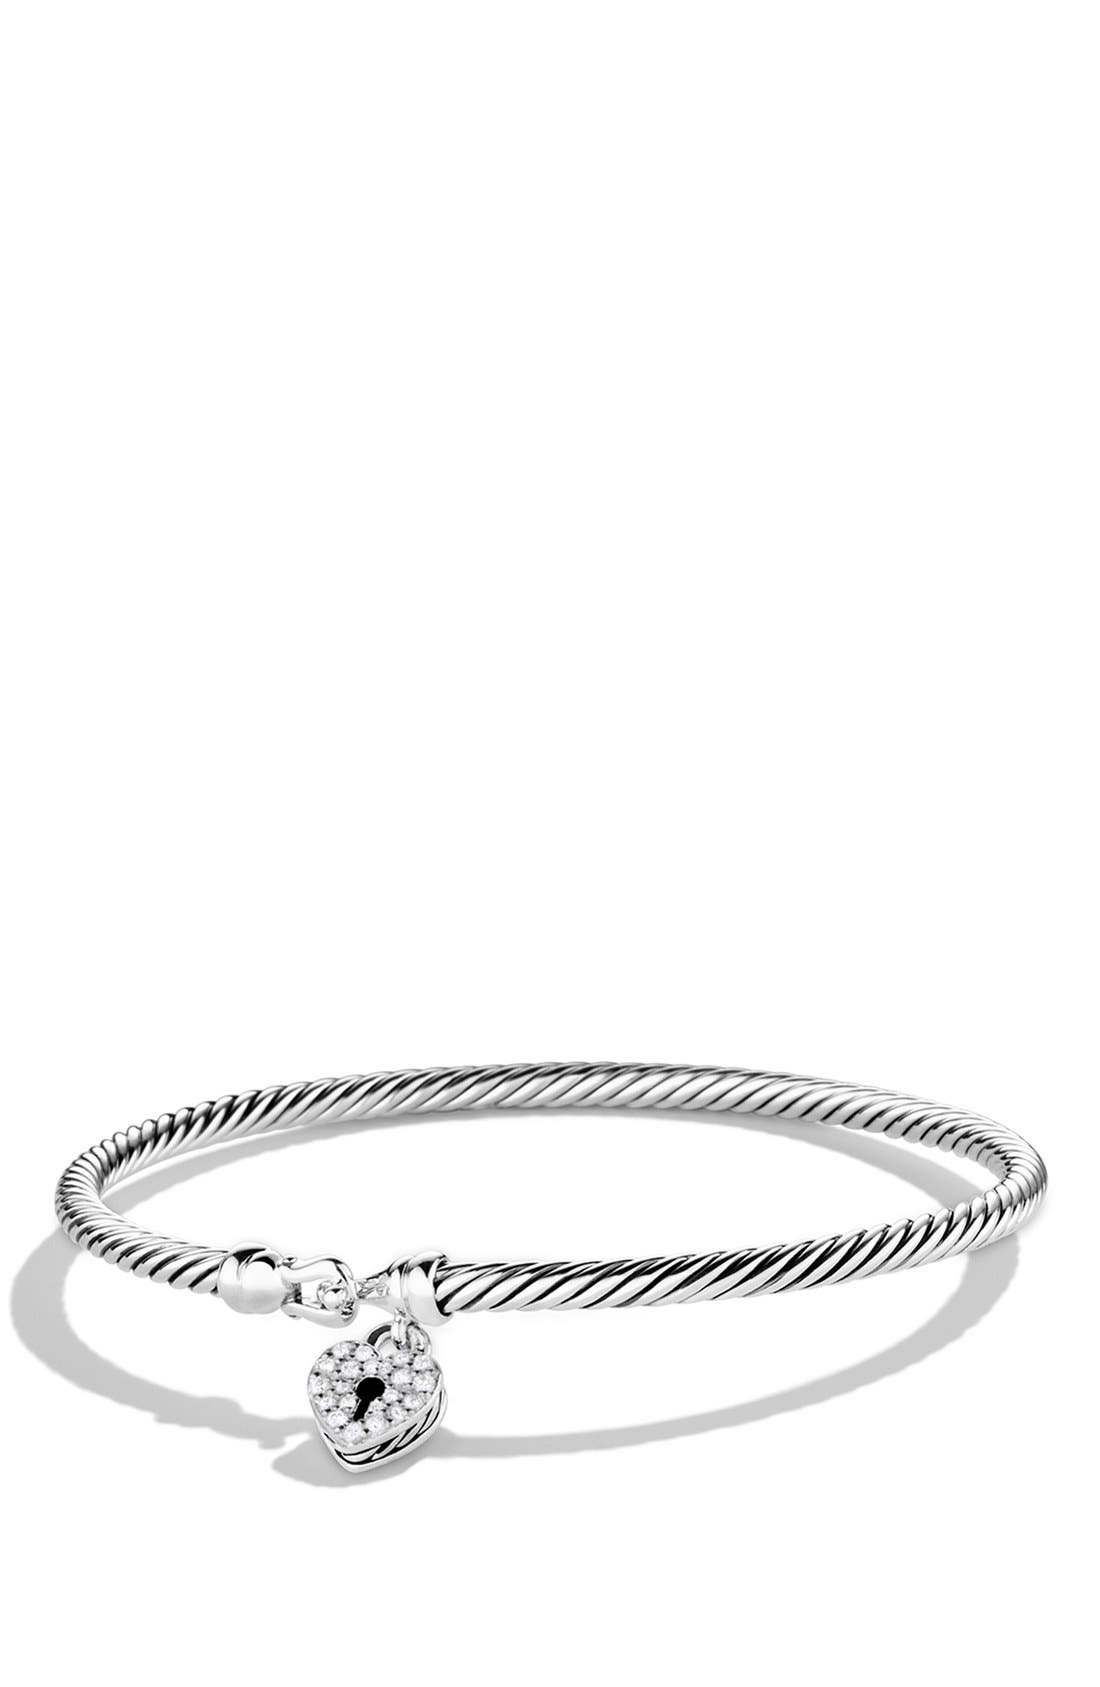 'Cable Collectibles' Heart Lock Bracelet with Diamonds,                         Main,                         color, 040